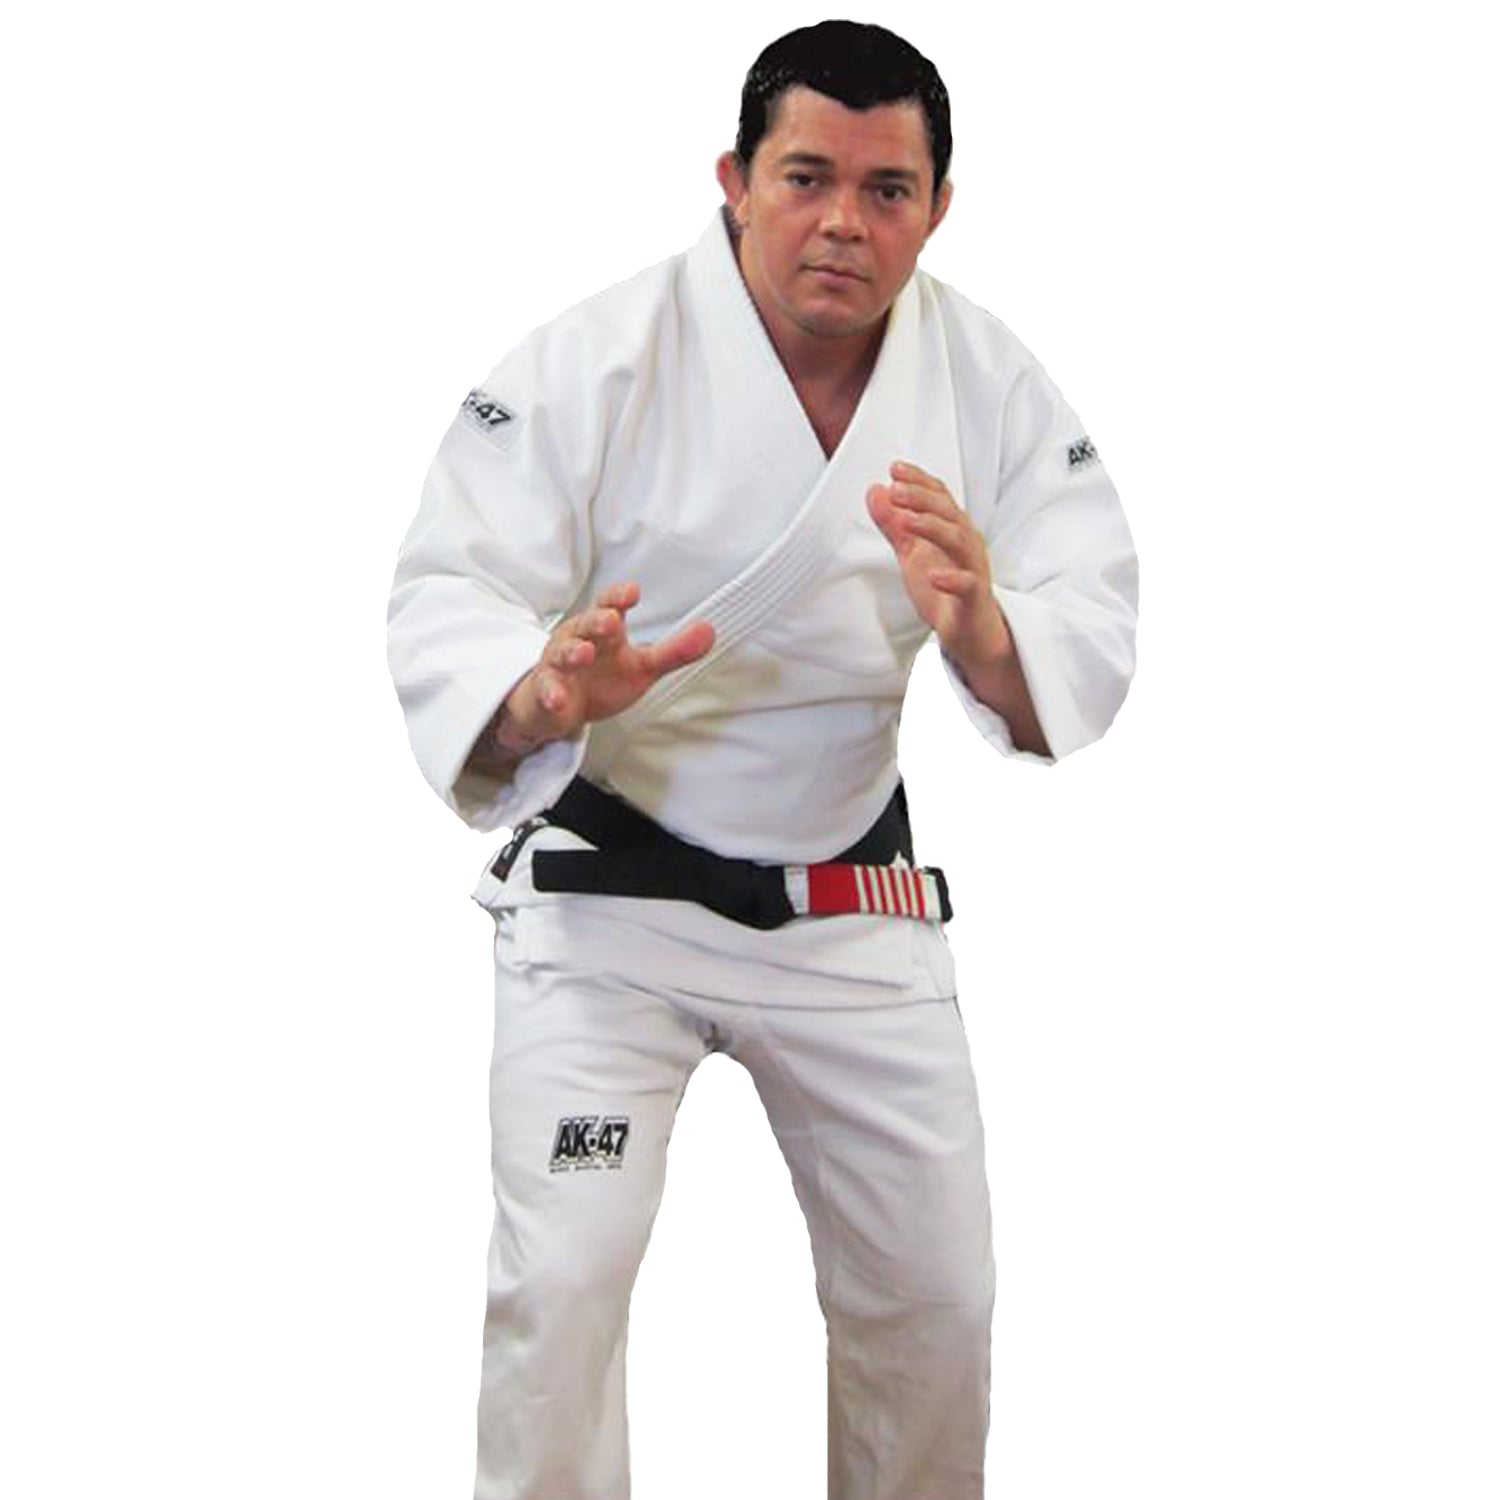 AK-47 Jiu Jitsu Uniform White